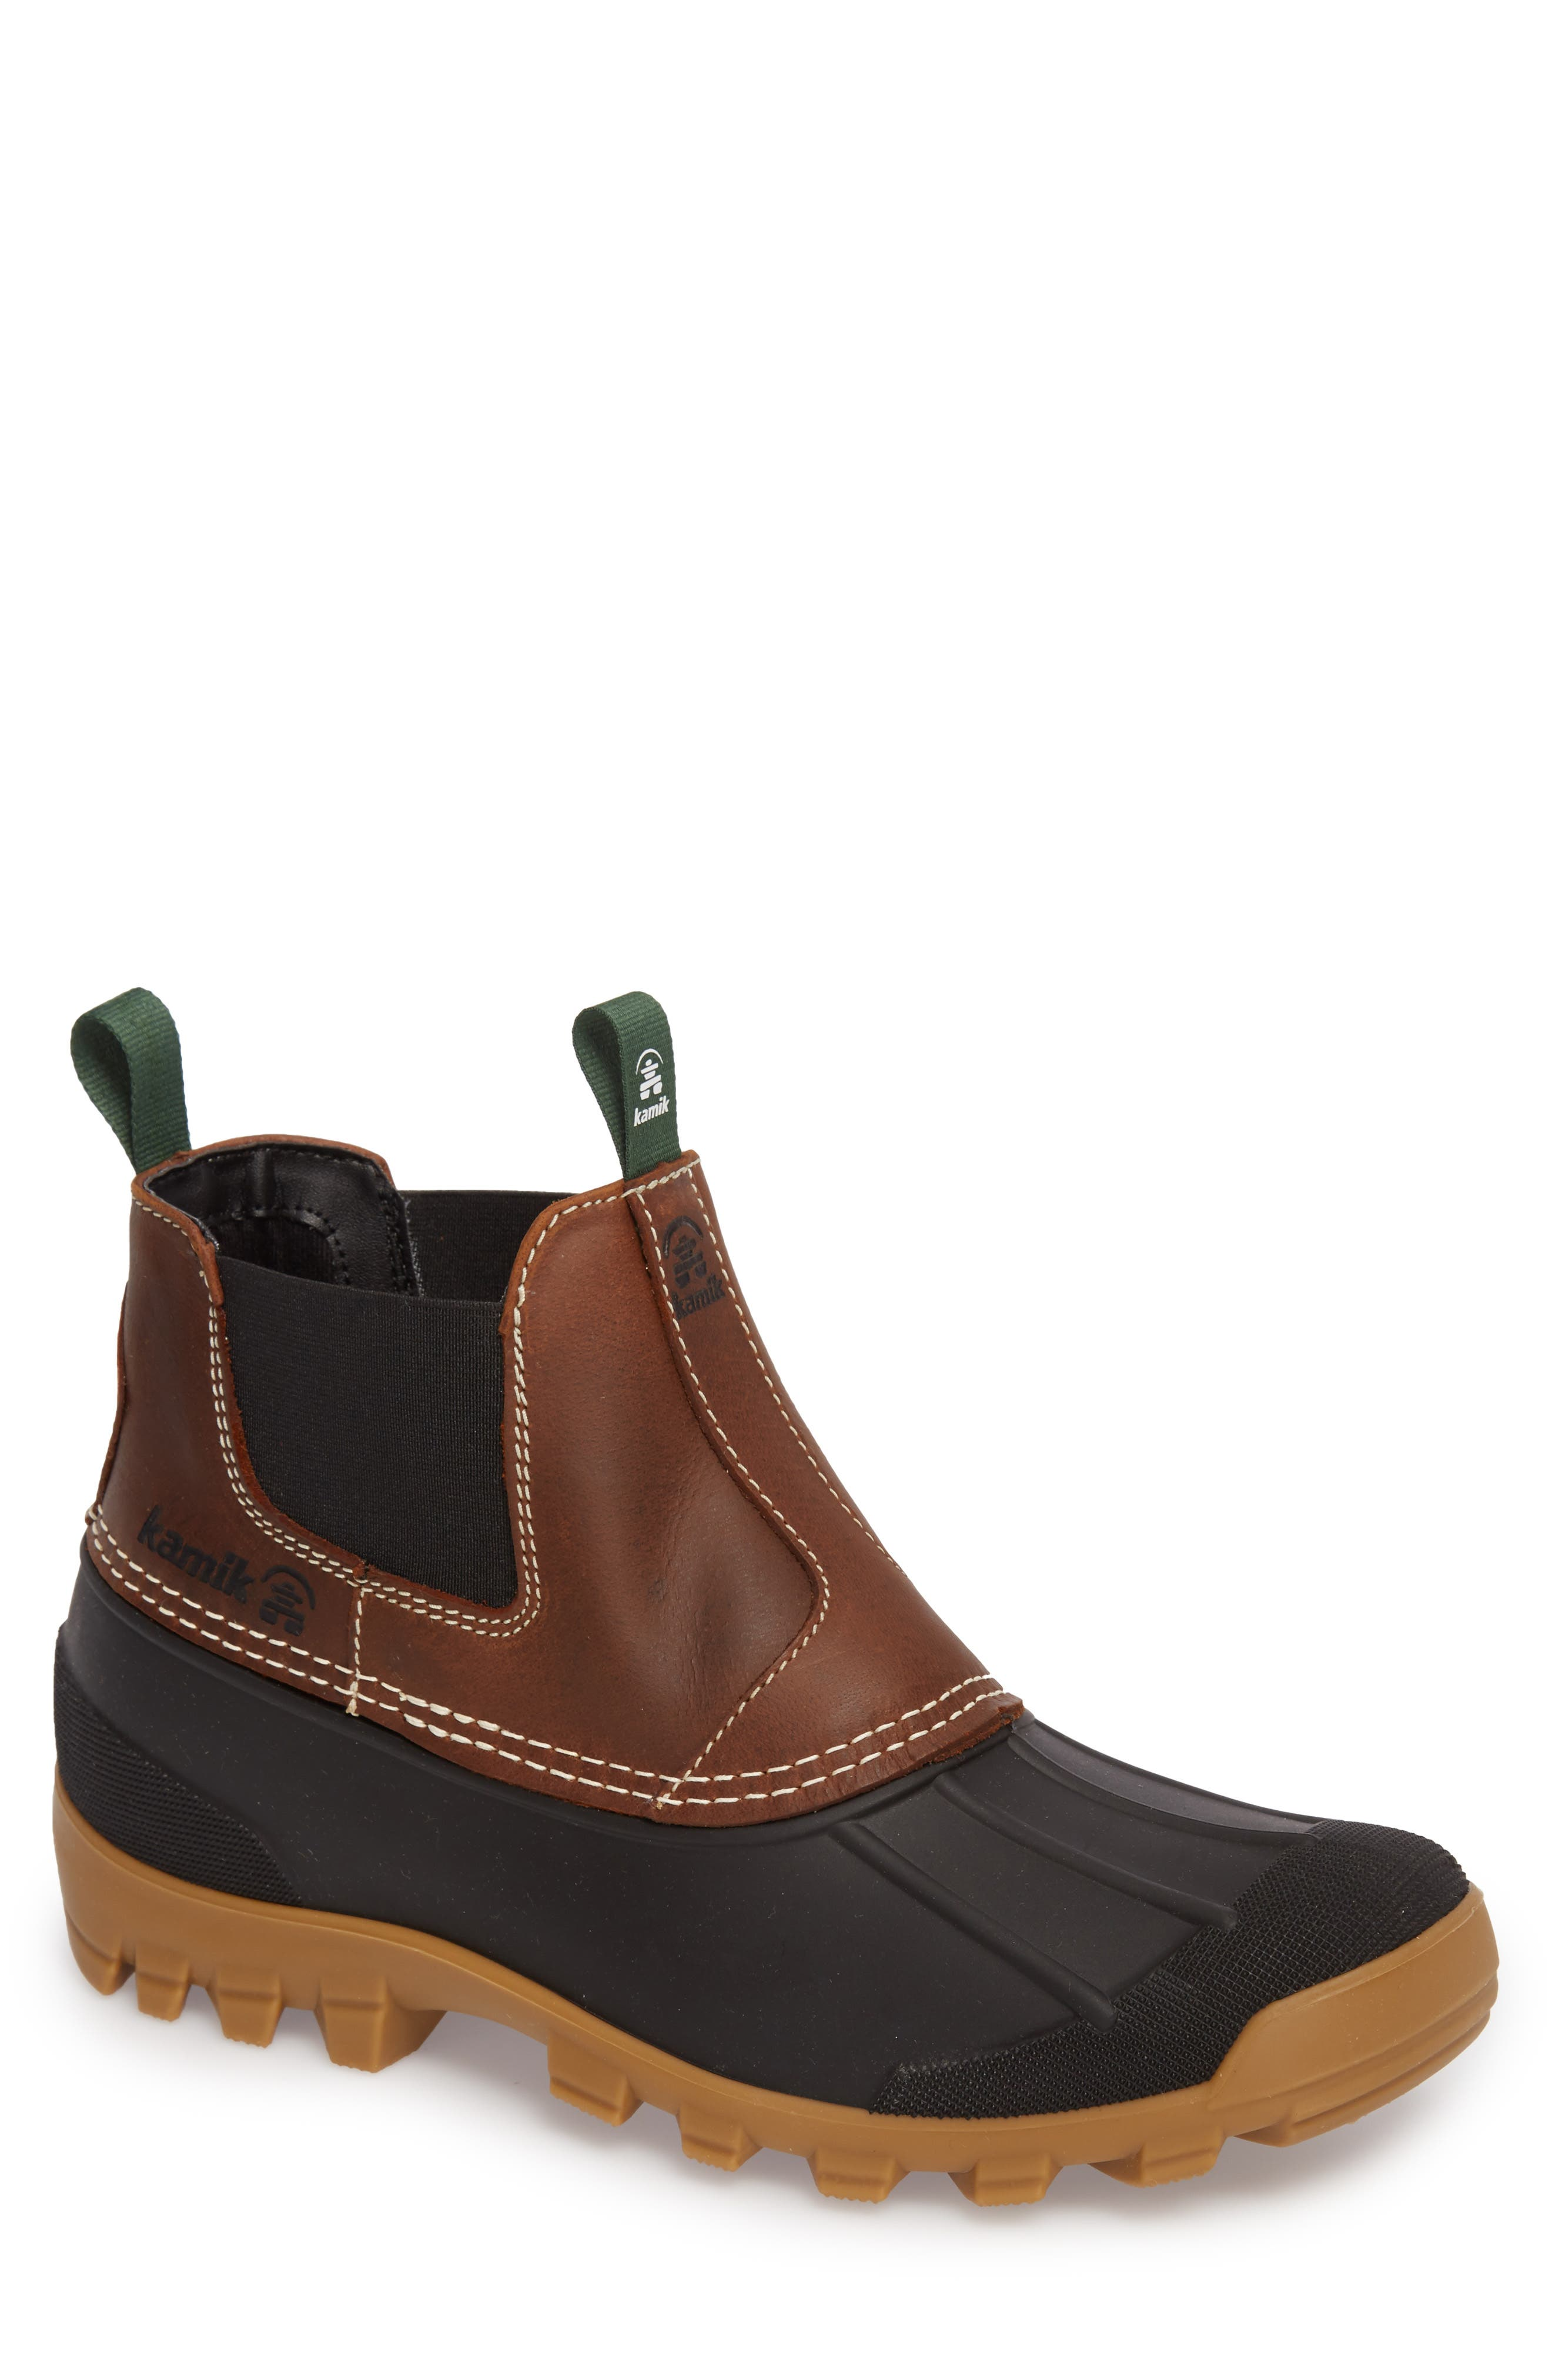 Yukon Chelsea Boot,                             Main thumbnail 1, color,                             DARK BROWN LEATHER